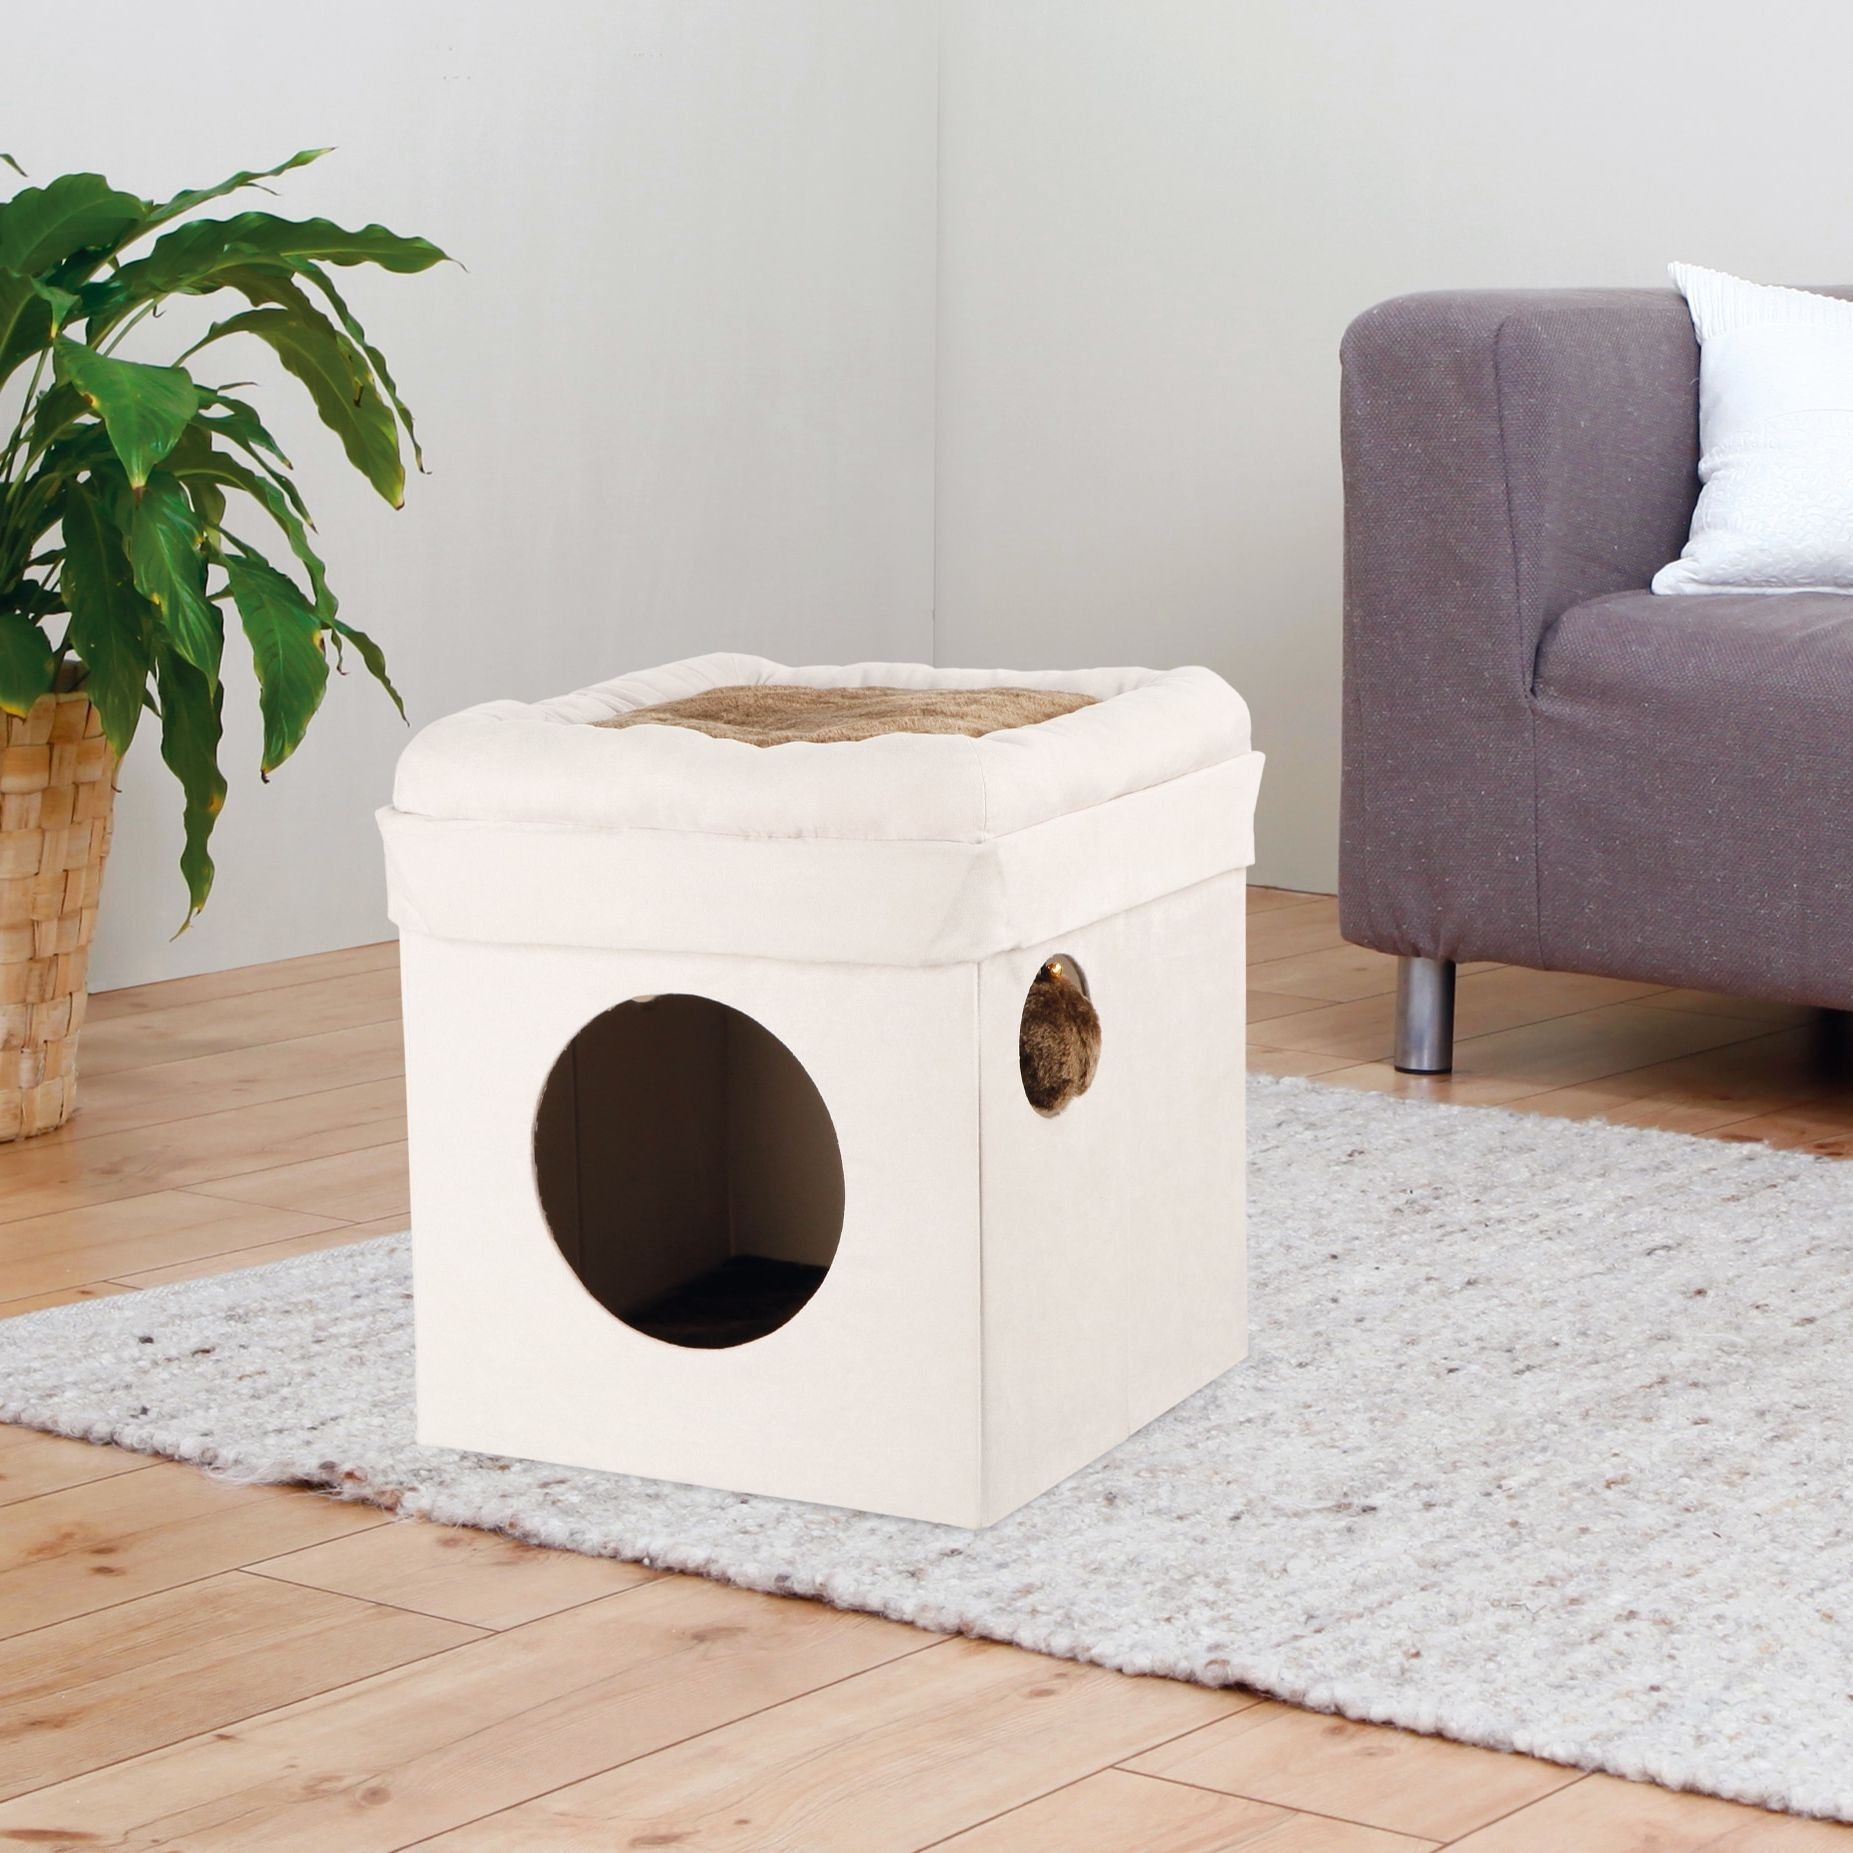 1 Piece Grey 16.5 Inches High Scratcher Fold Store Cat Condo, Gray Pet Hiding Cube Tree Bed Kitty Furniture Tunnel House, Collapsible Design Diamond Opening Dangling Pom-pom Toy Sisal Rope Polyester